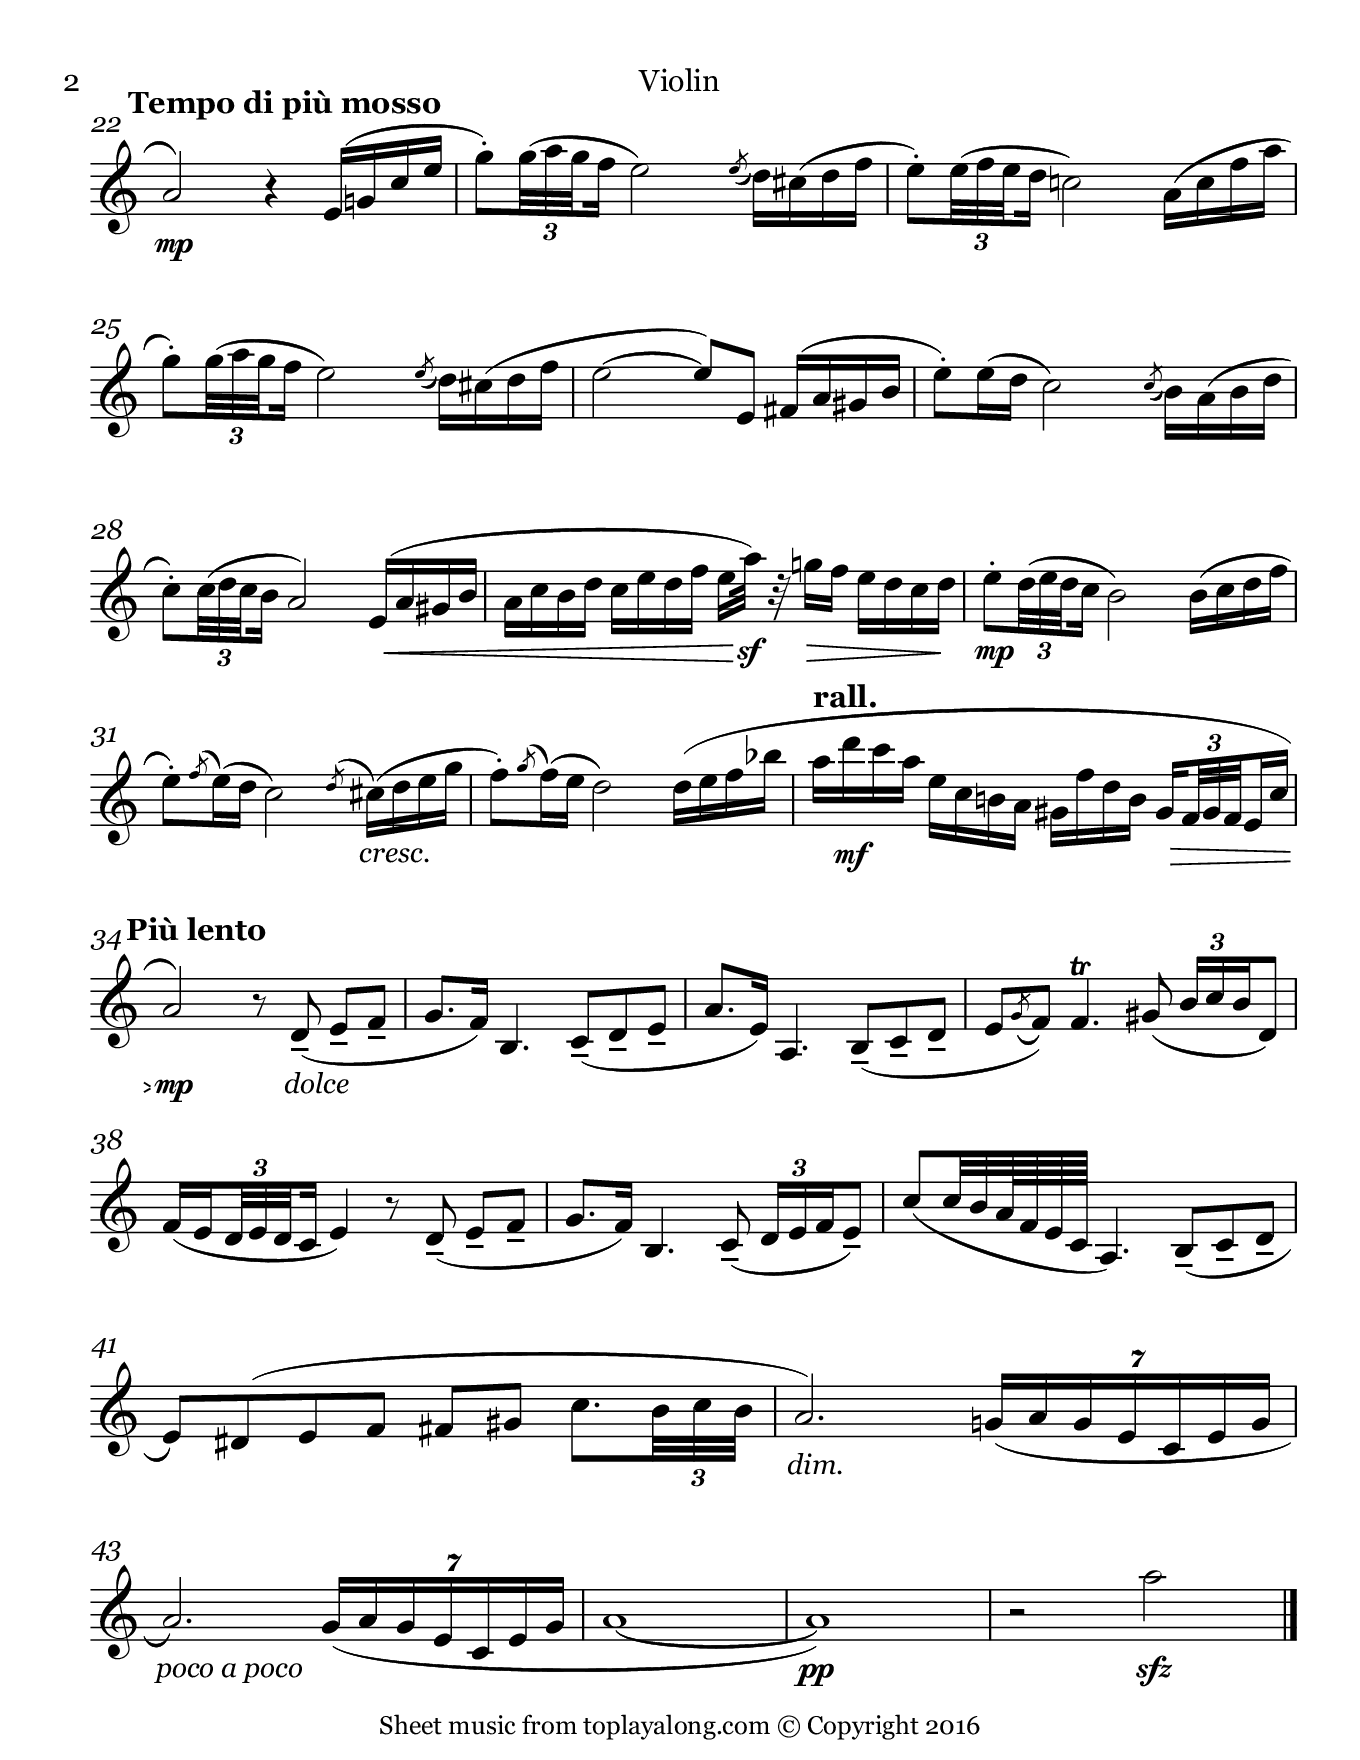 Andalouse by Pessard. Sheet music for Violin, page 2.